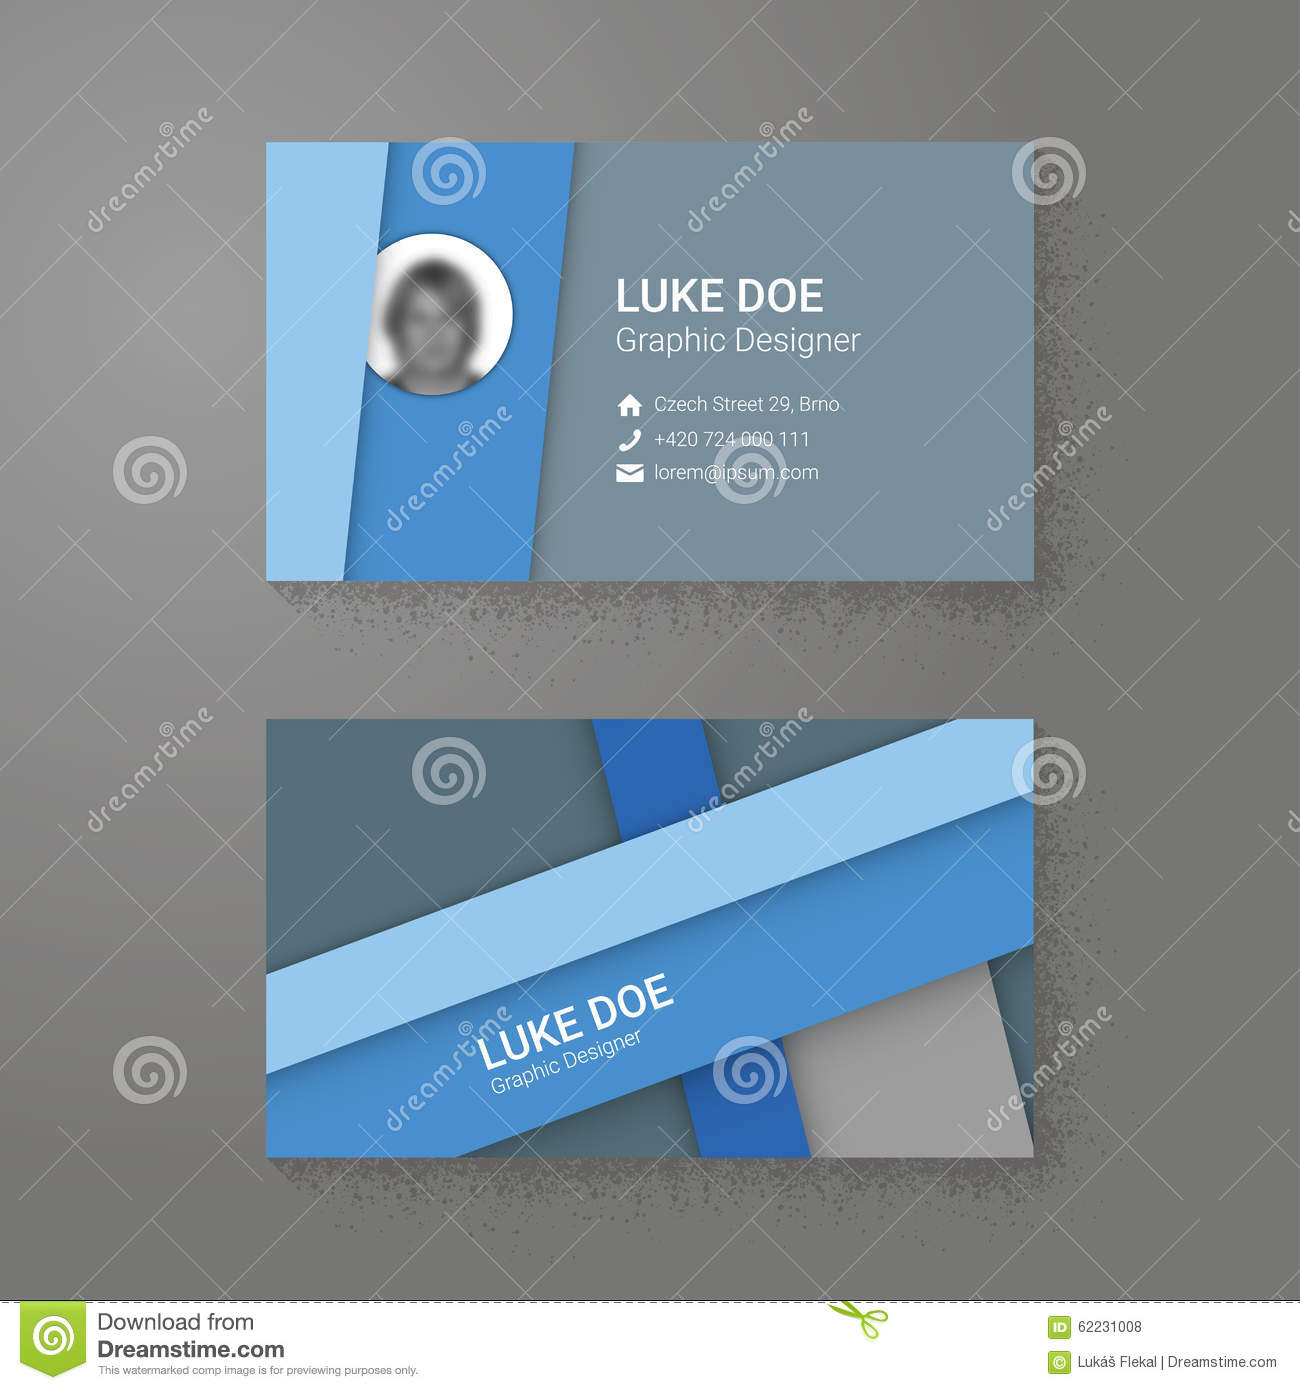 Material Desig Style Business Card Template Stock Vector - Image ...